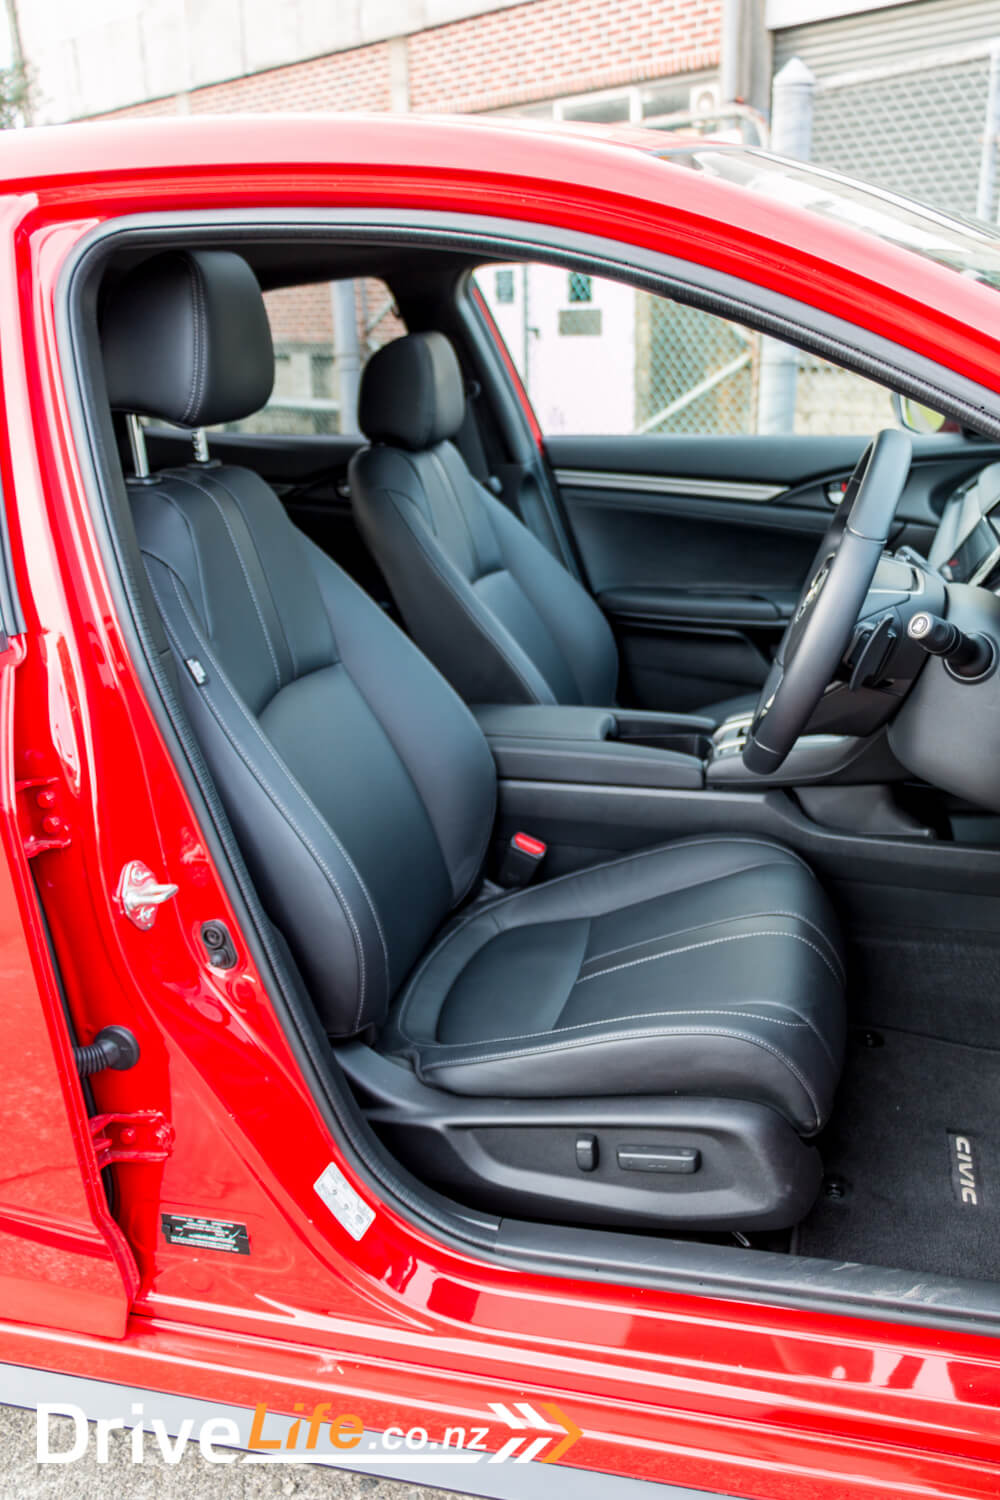 Smaller Than The Sedan But The Rear Seats Split 60/40 And Drop Flat For  Longer Items, Giving You 1203 Litres Of Space.